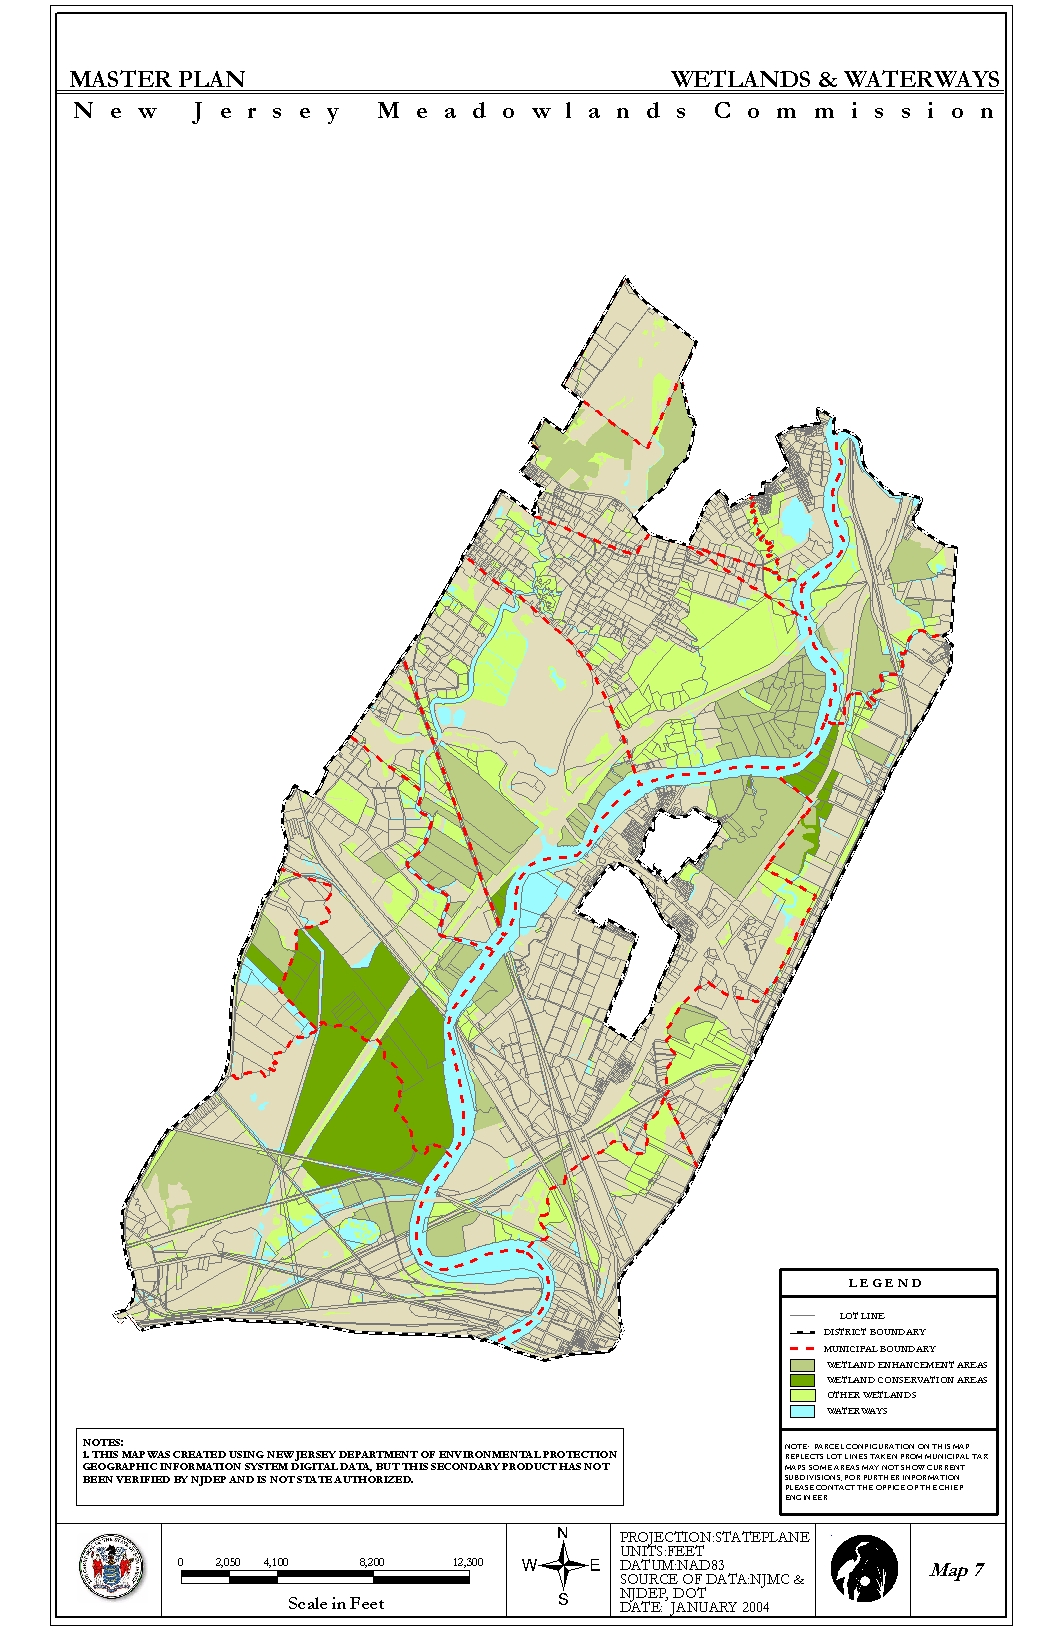 Nj Wetlands Map Urban Habitats    The Meadowlands Before the Commission: Three